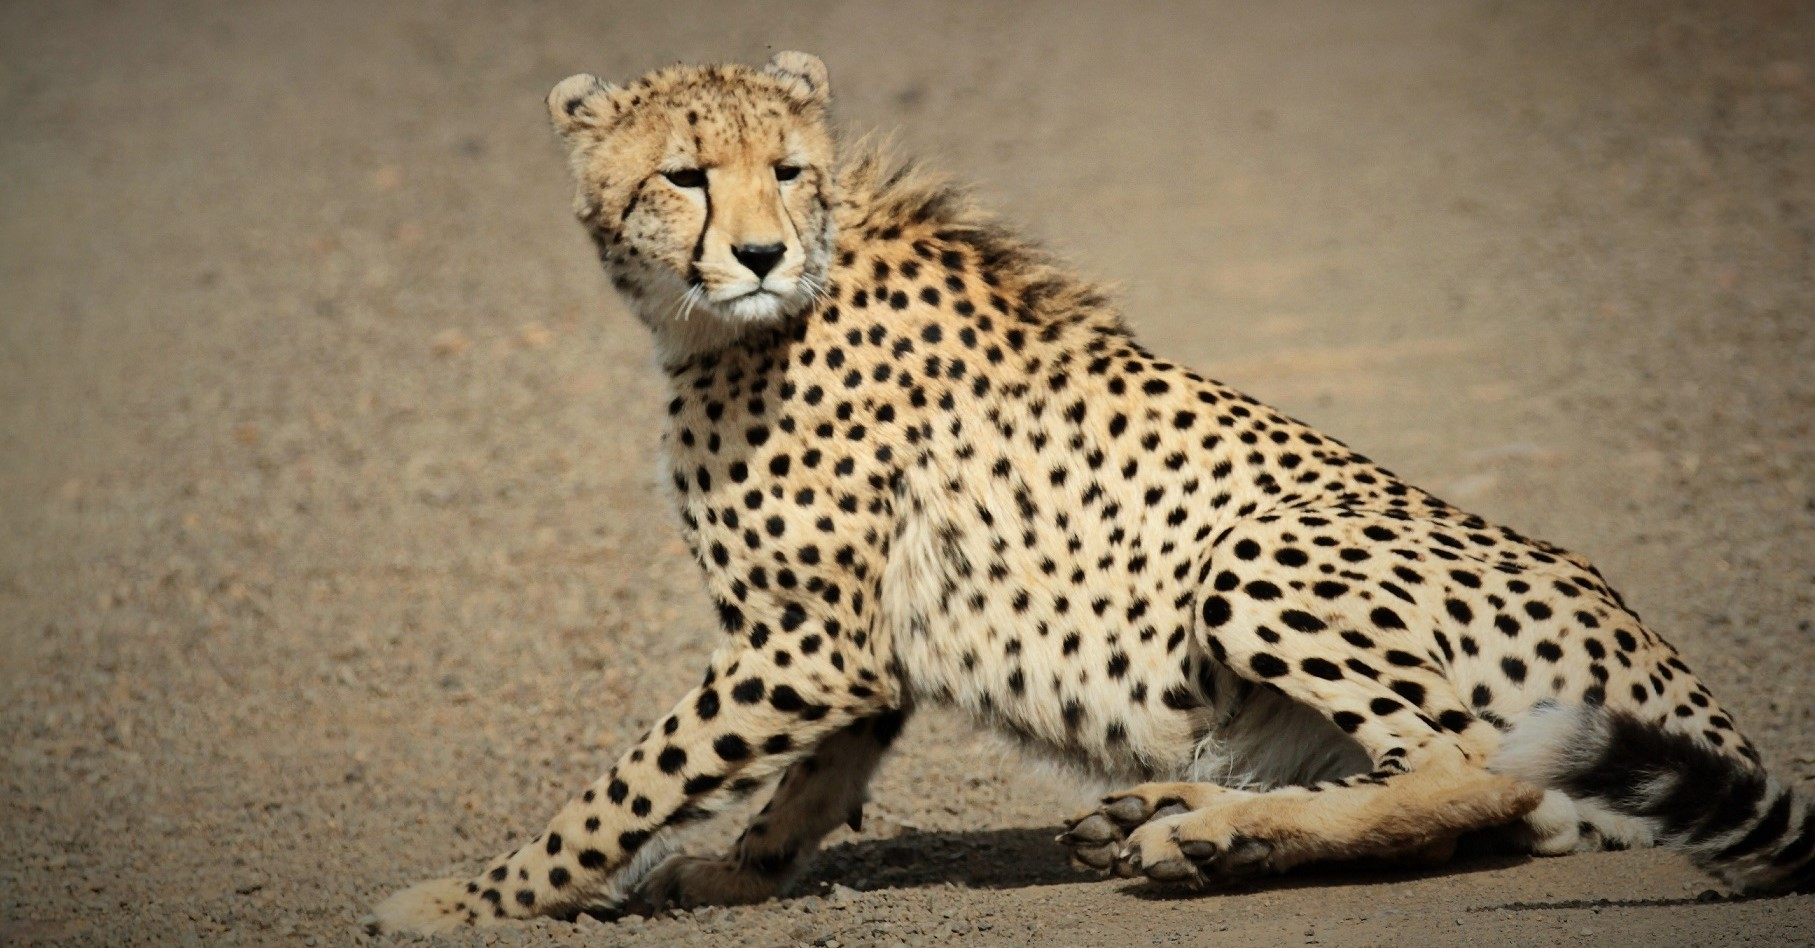 Why does the cheetah has built-in sunglasses?